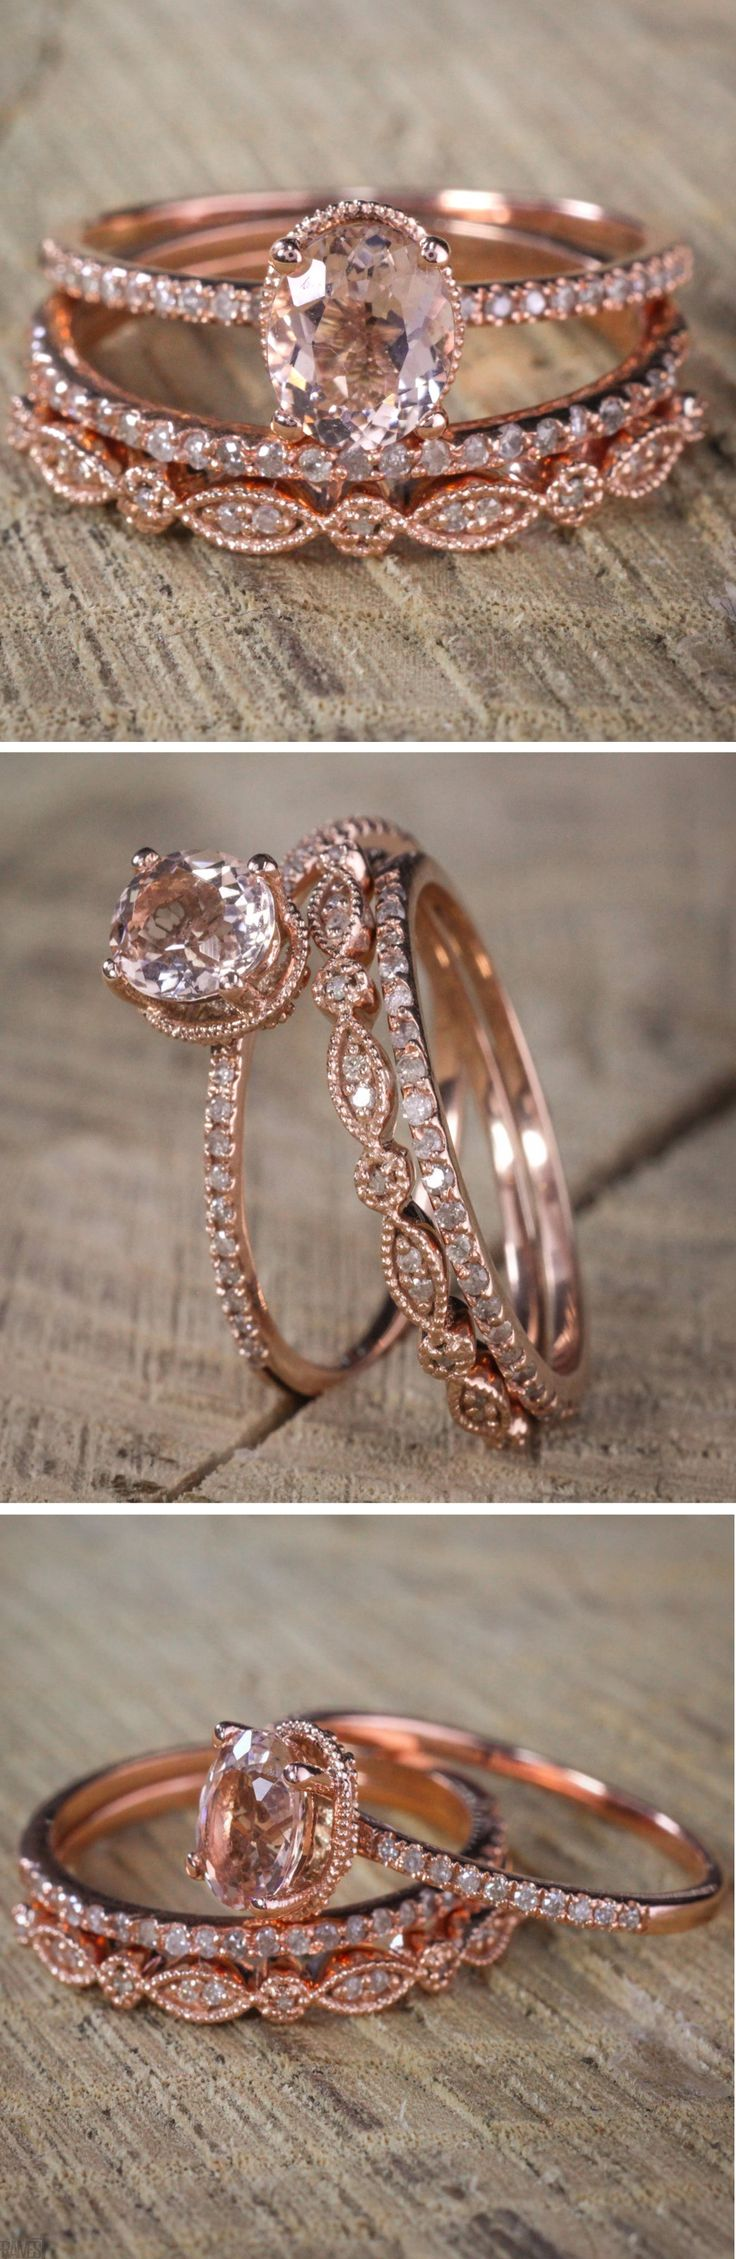 pin her will future rings brides add pinterest engagement to want board